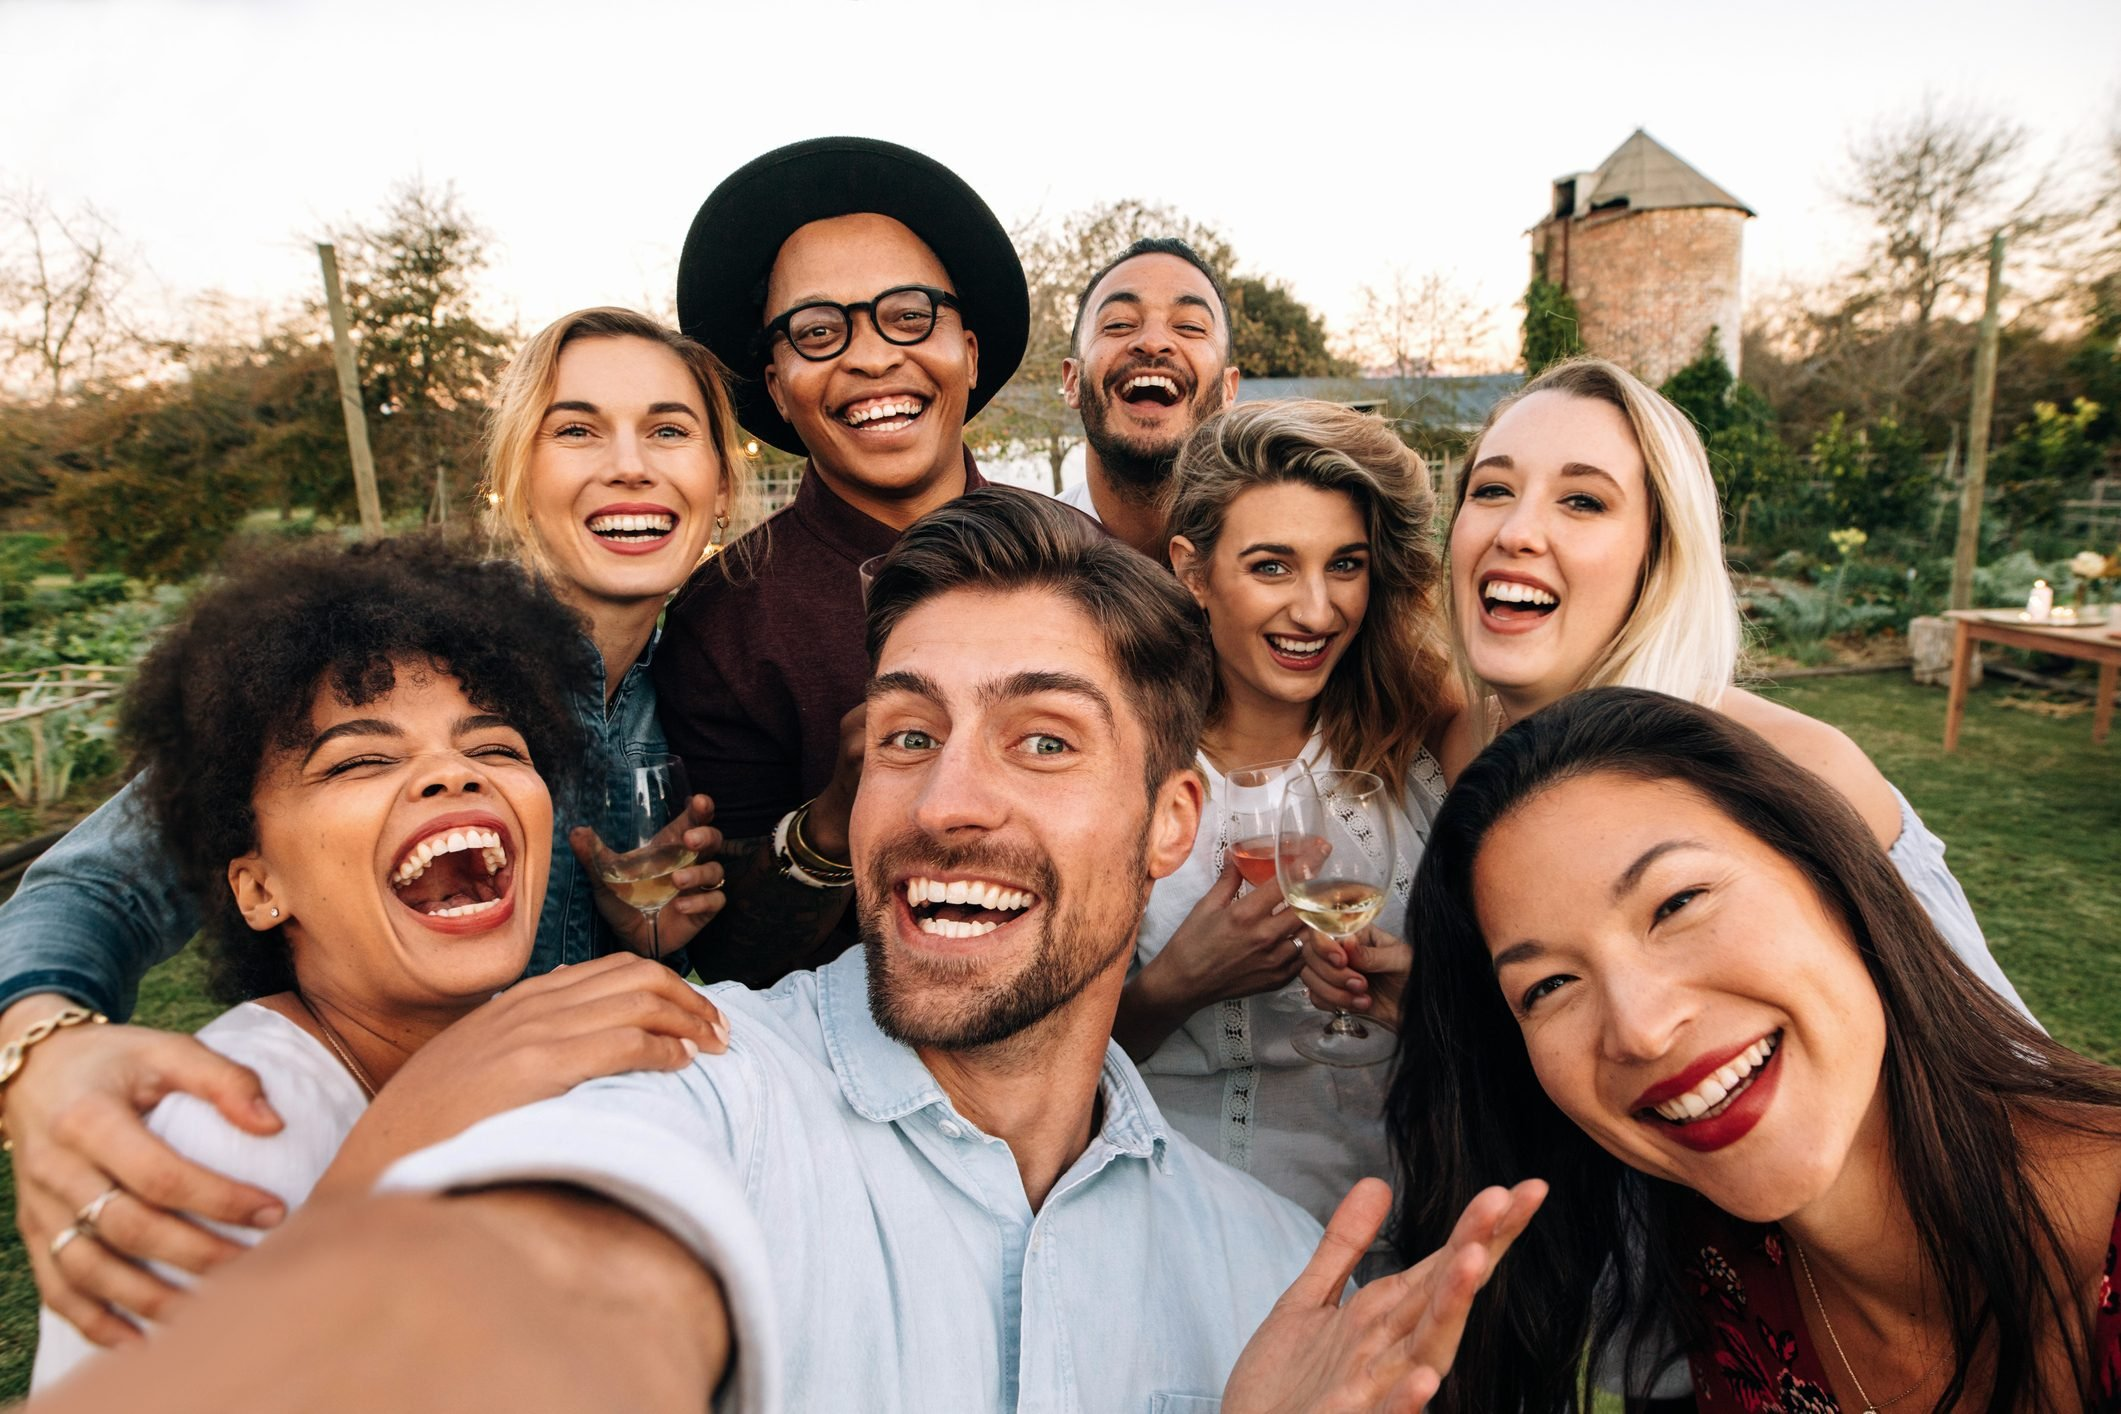 Friends making a selfie together at party